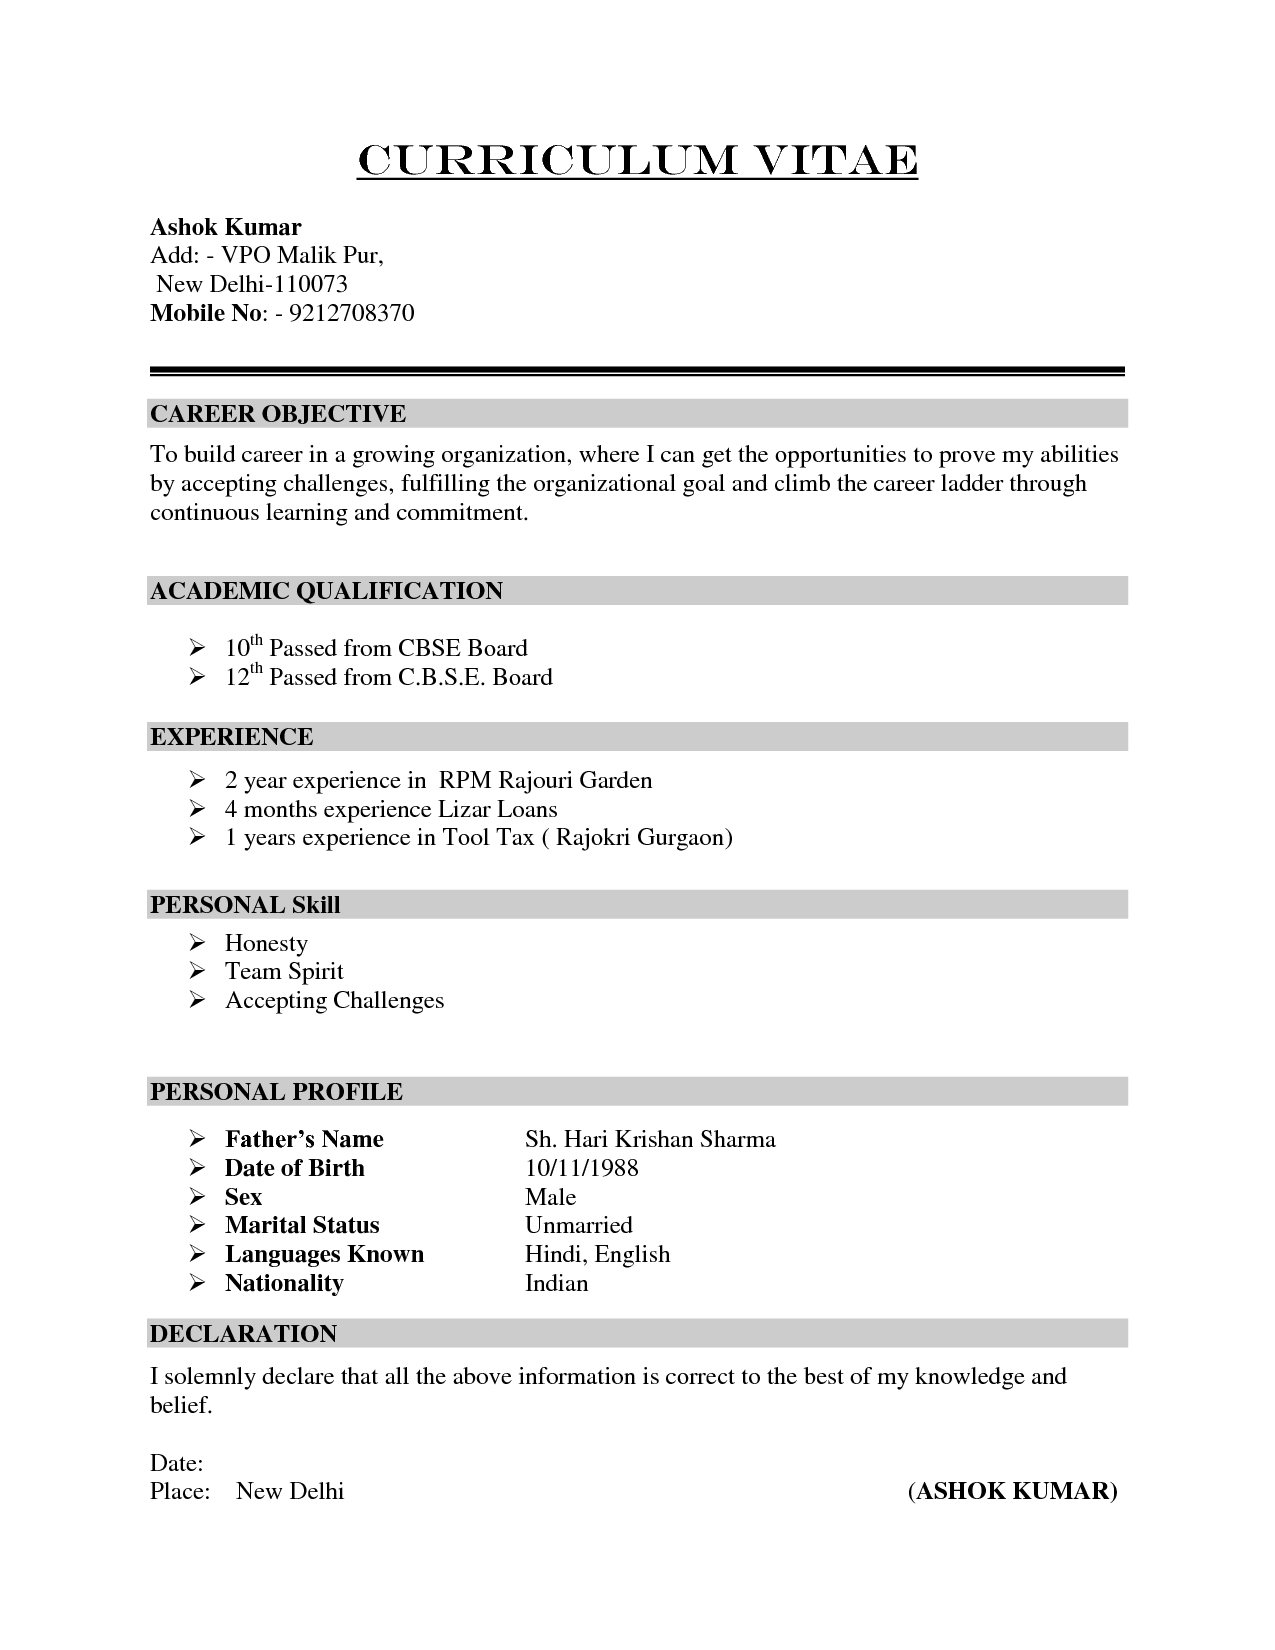 resume and cv examples - How To Make A Resume Example